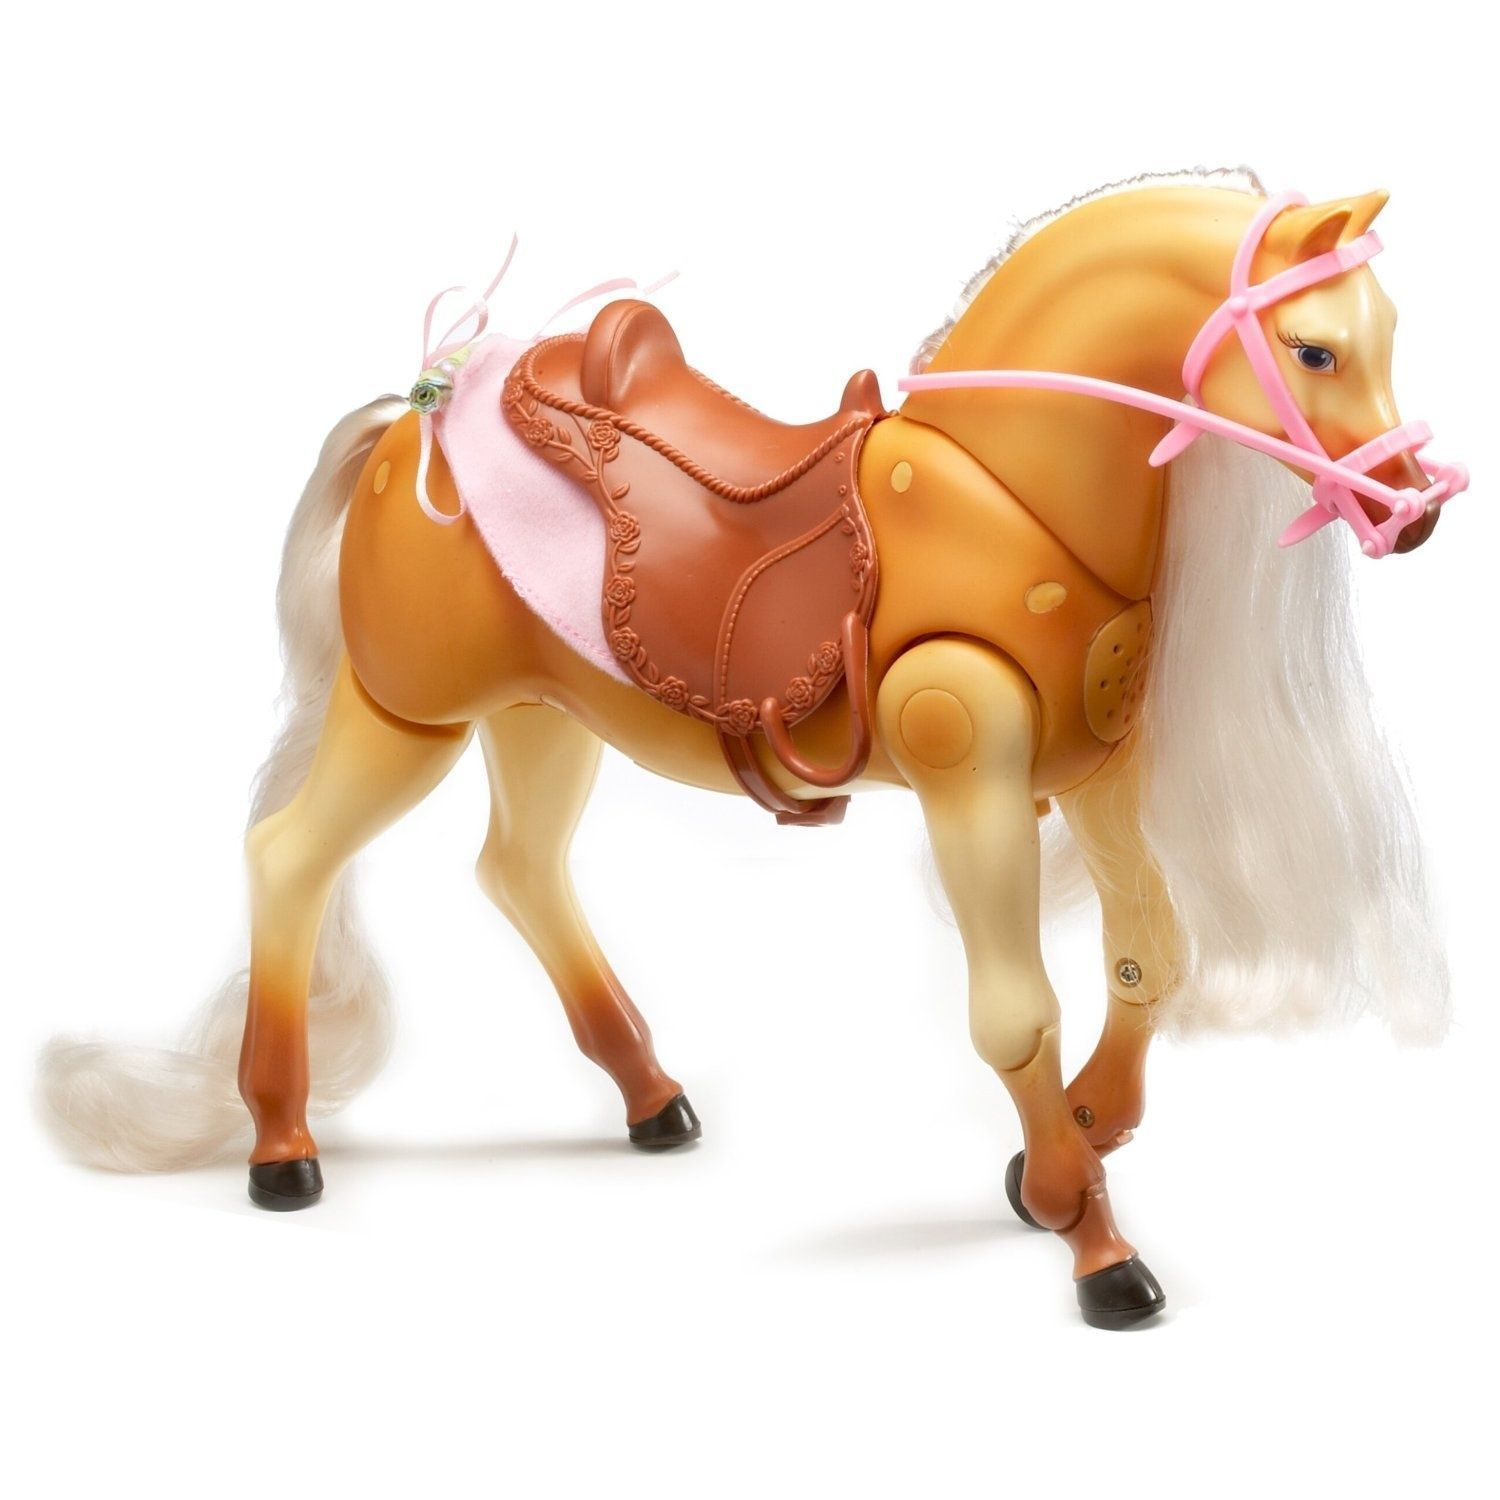 2006 Barbie Forever Tawny 10 Inch Walking and Neighing Horse Mint